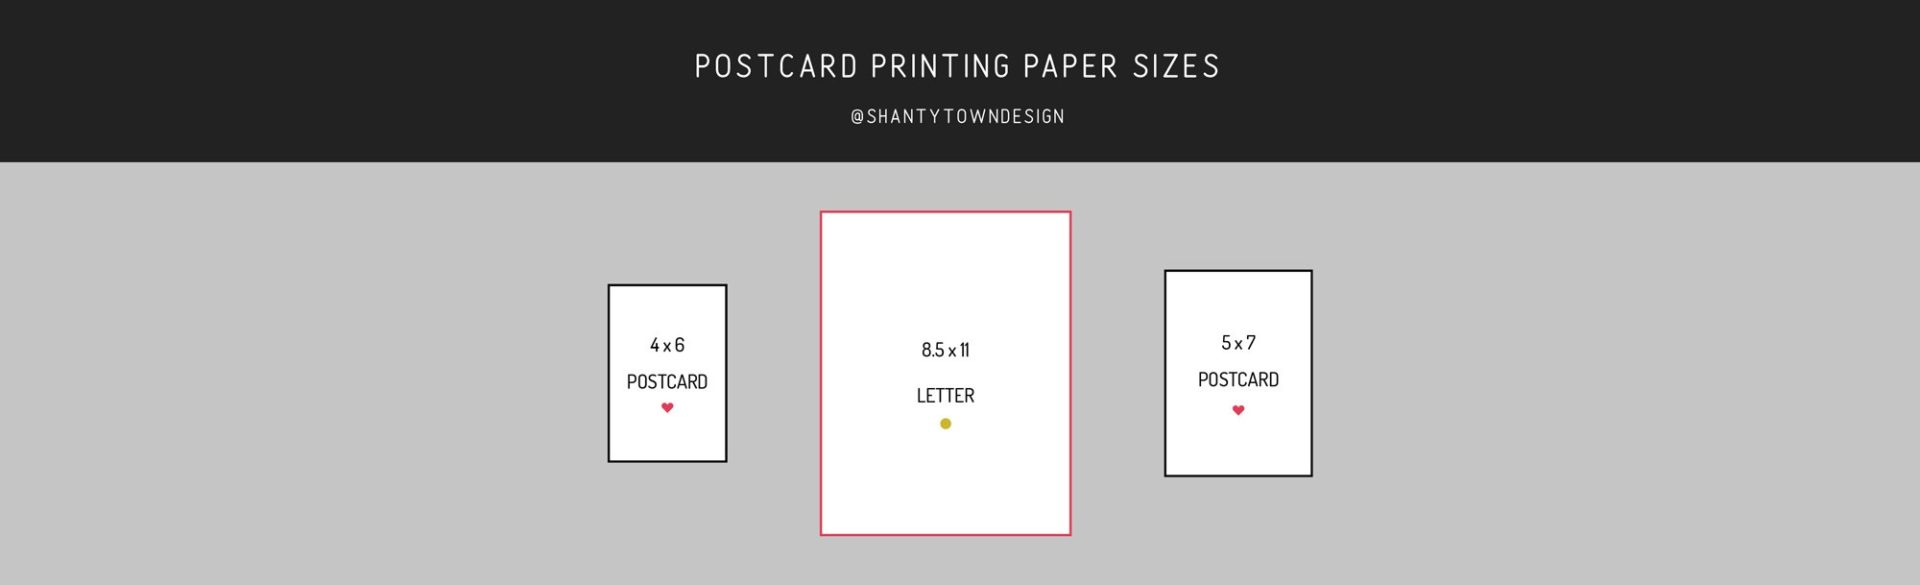 US postcard paper printing size guide